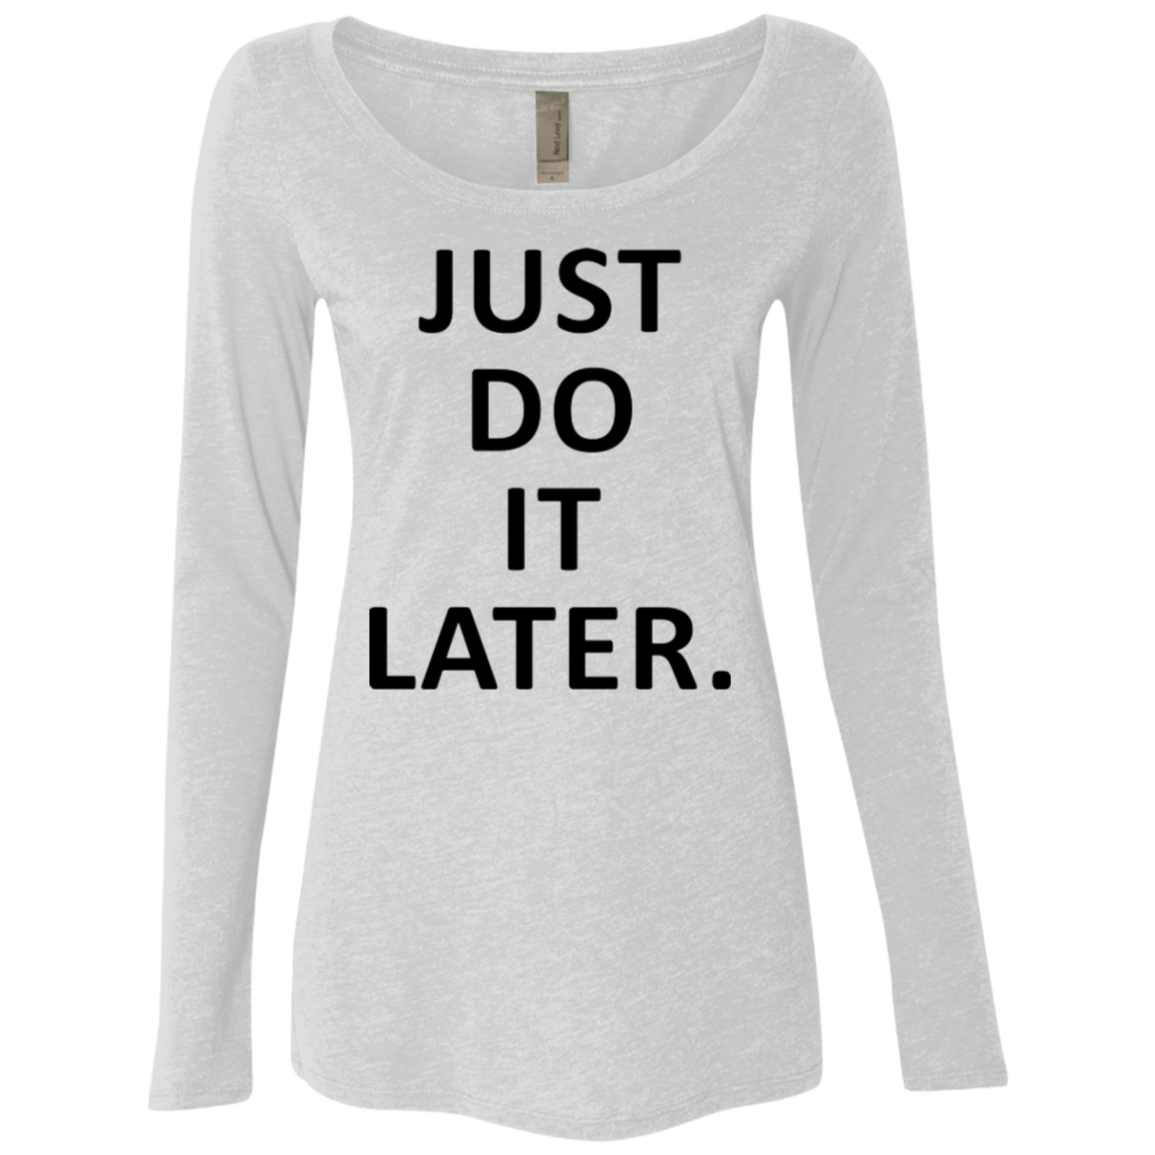 Just Do it Later Women's Long Sleeve Tee